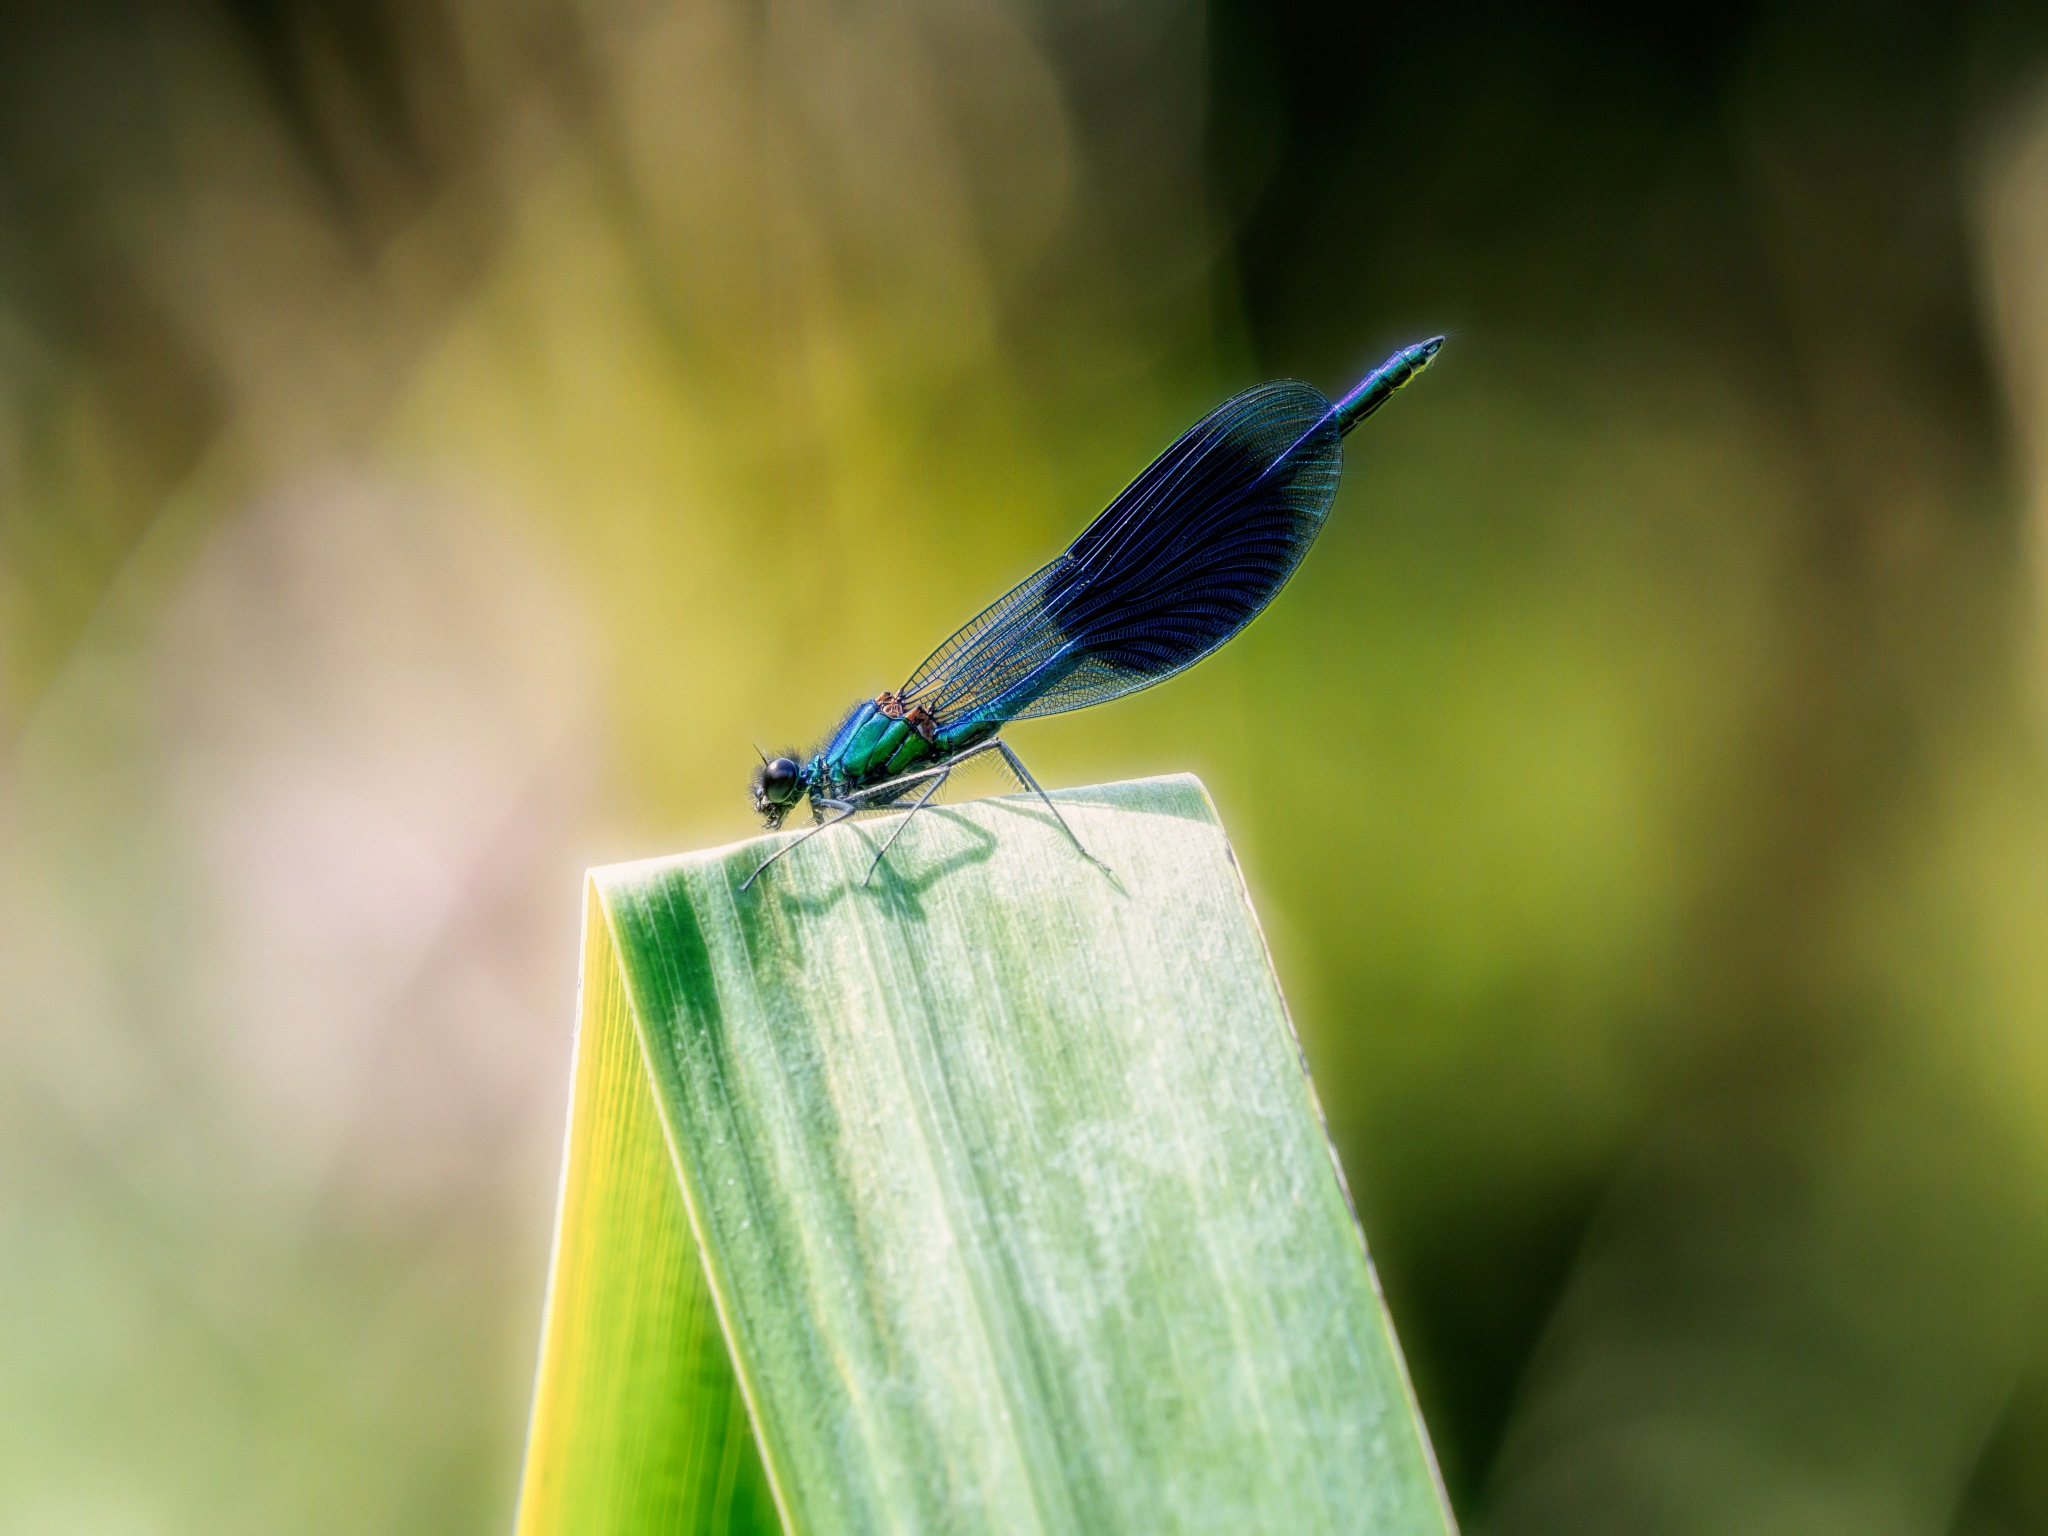 Male Banded Demoiselle by Sarah Walters